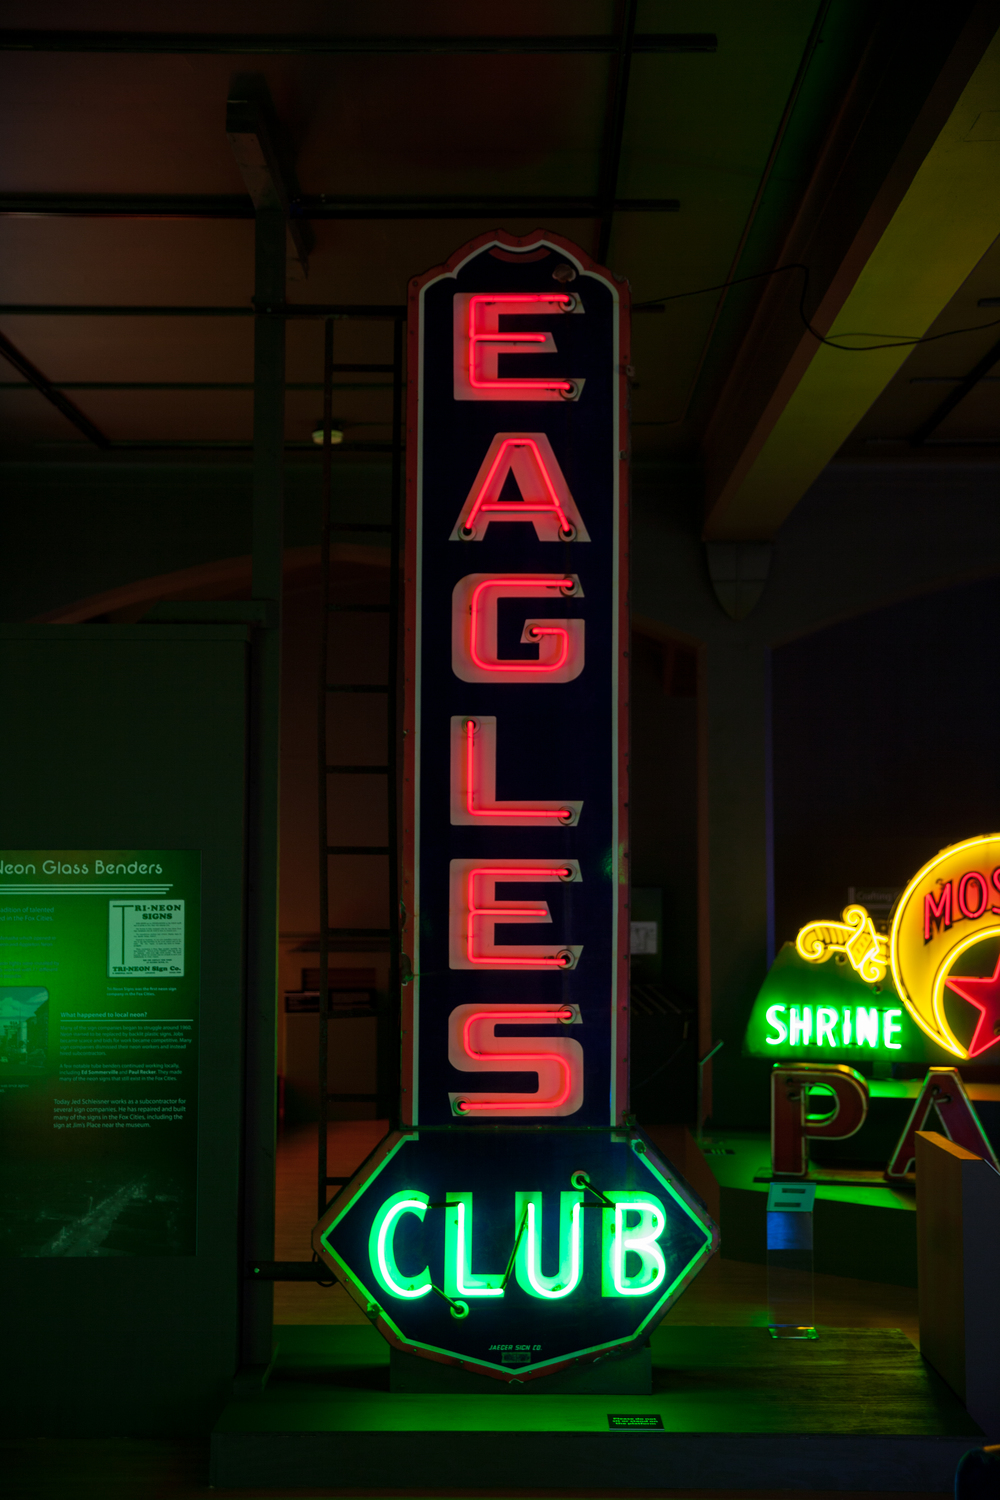 Eagles Club Neon and Porcelain Enamel Sign.